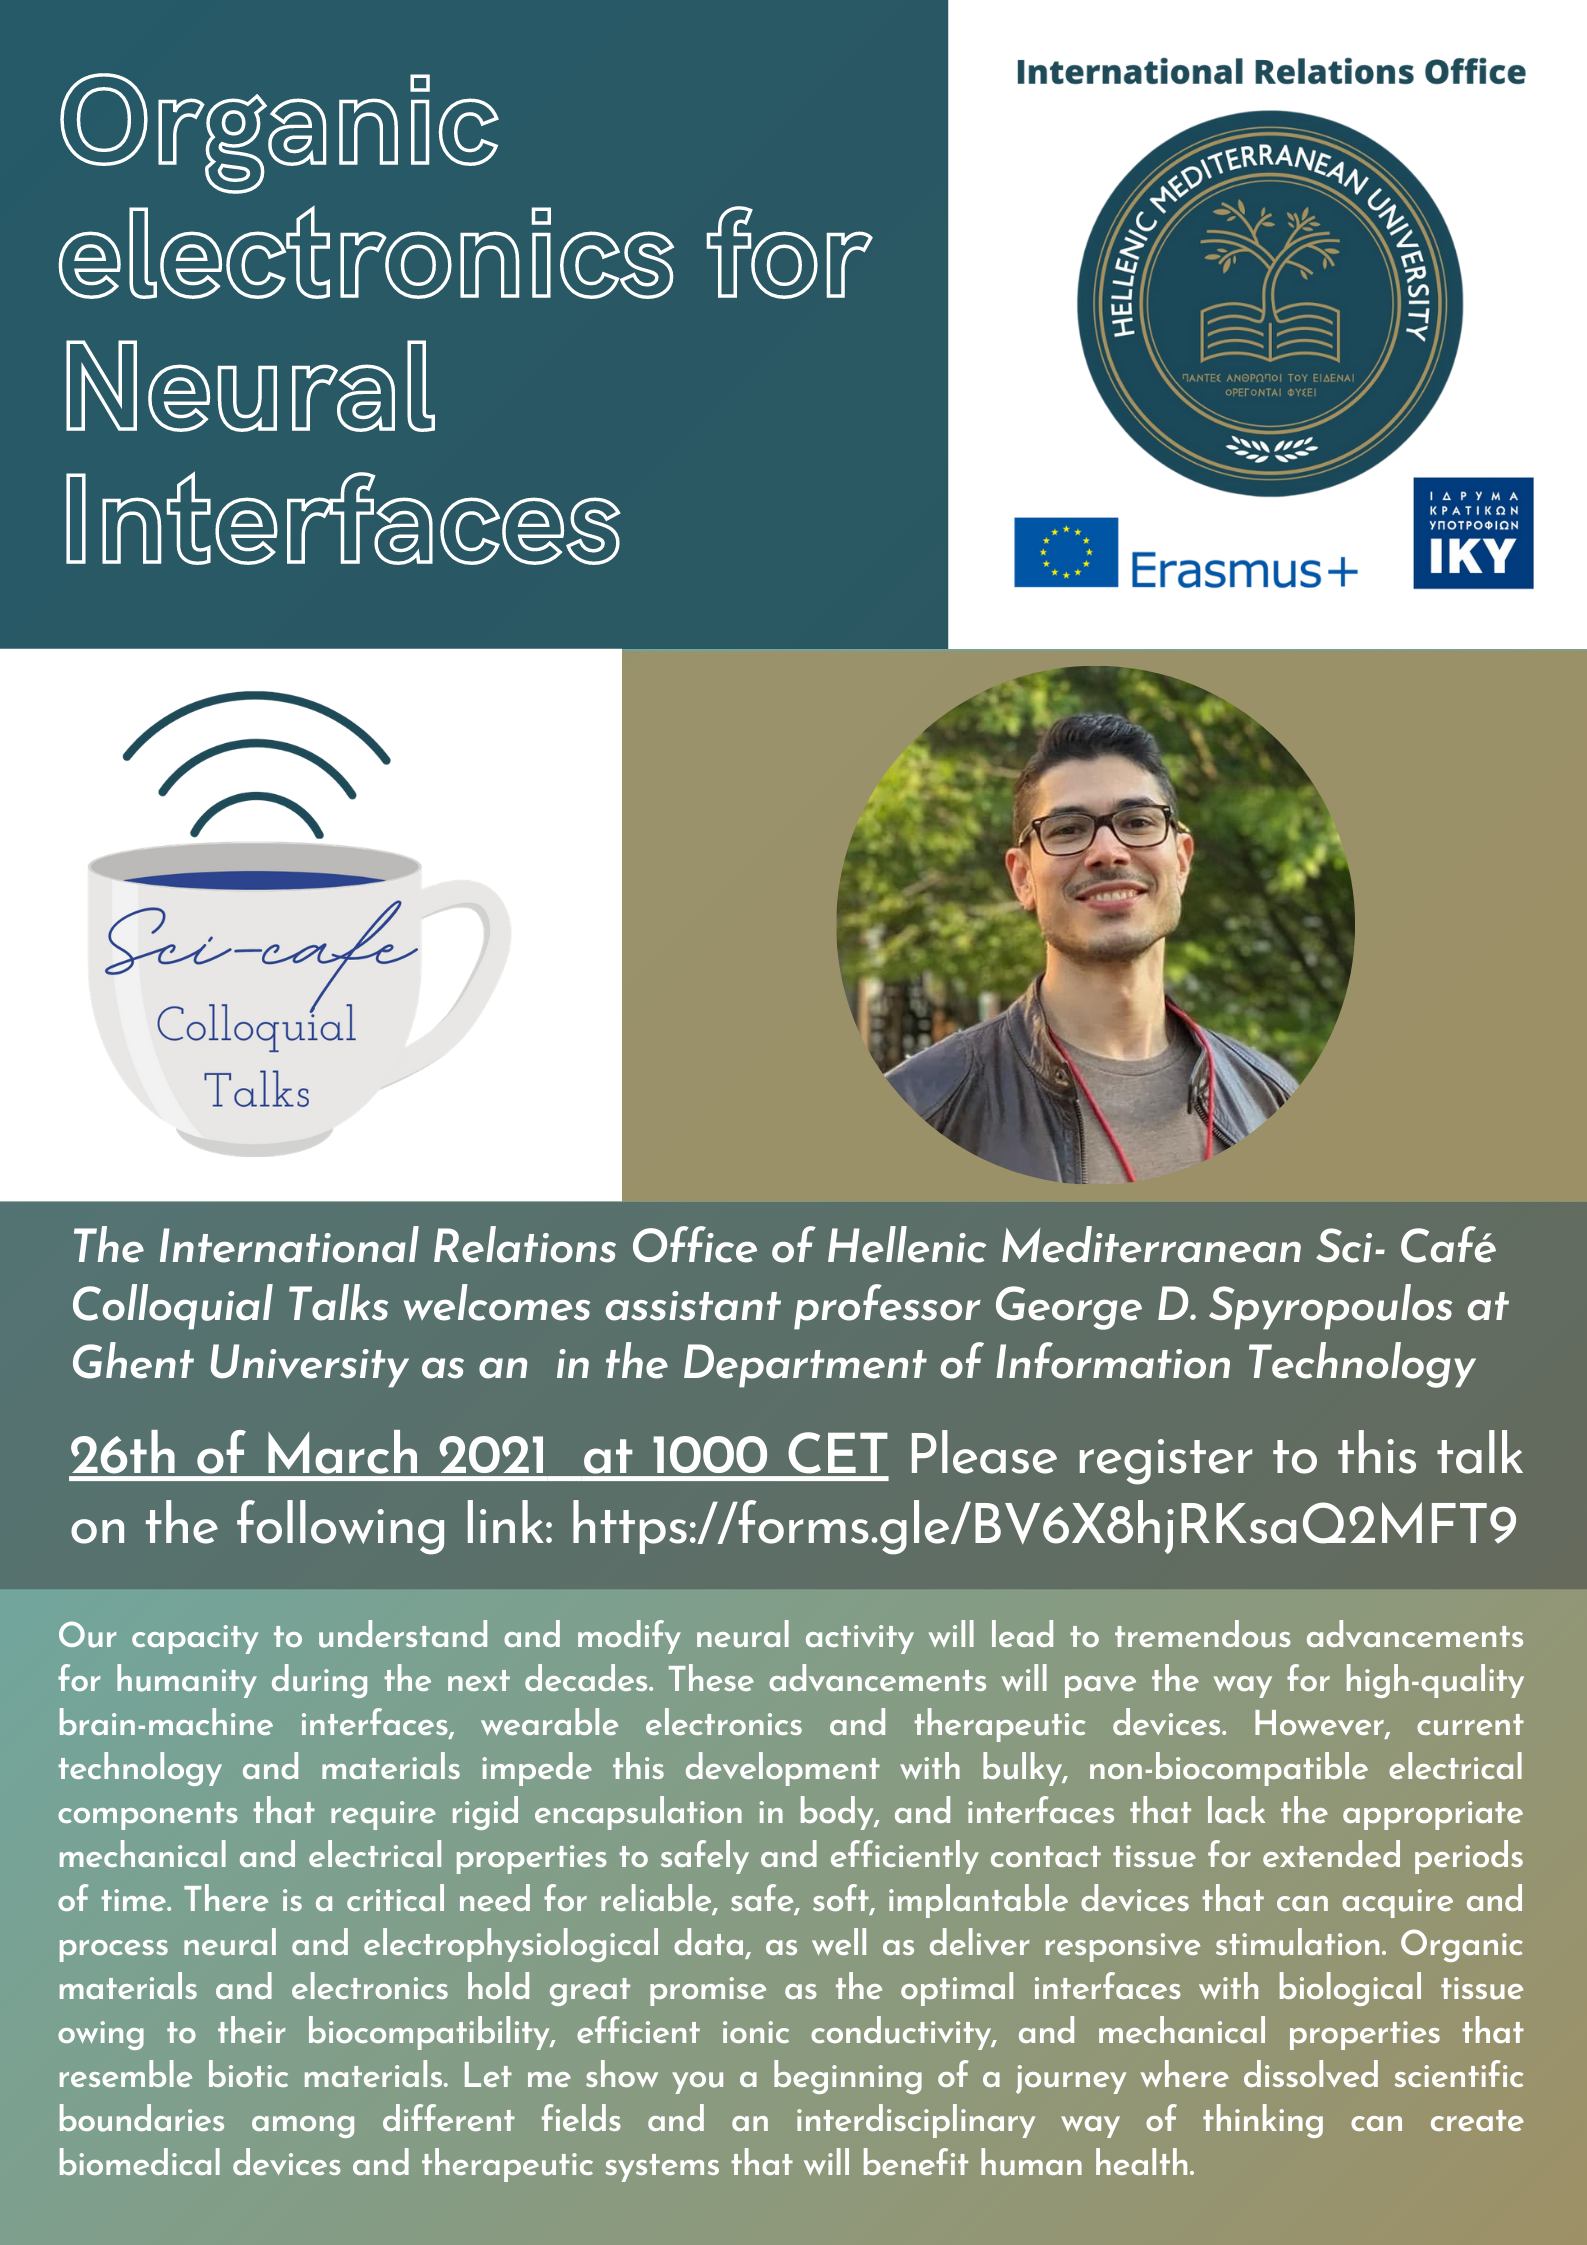 Sci-Cafe Talk, Organic Electronics for Neural Interfaces (Dr. George Spyropoulos), Friday 26th of November 2021